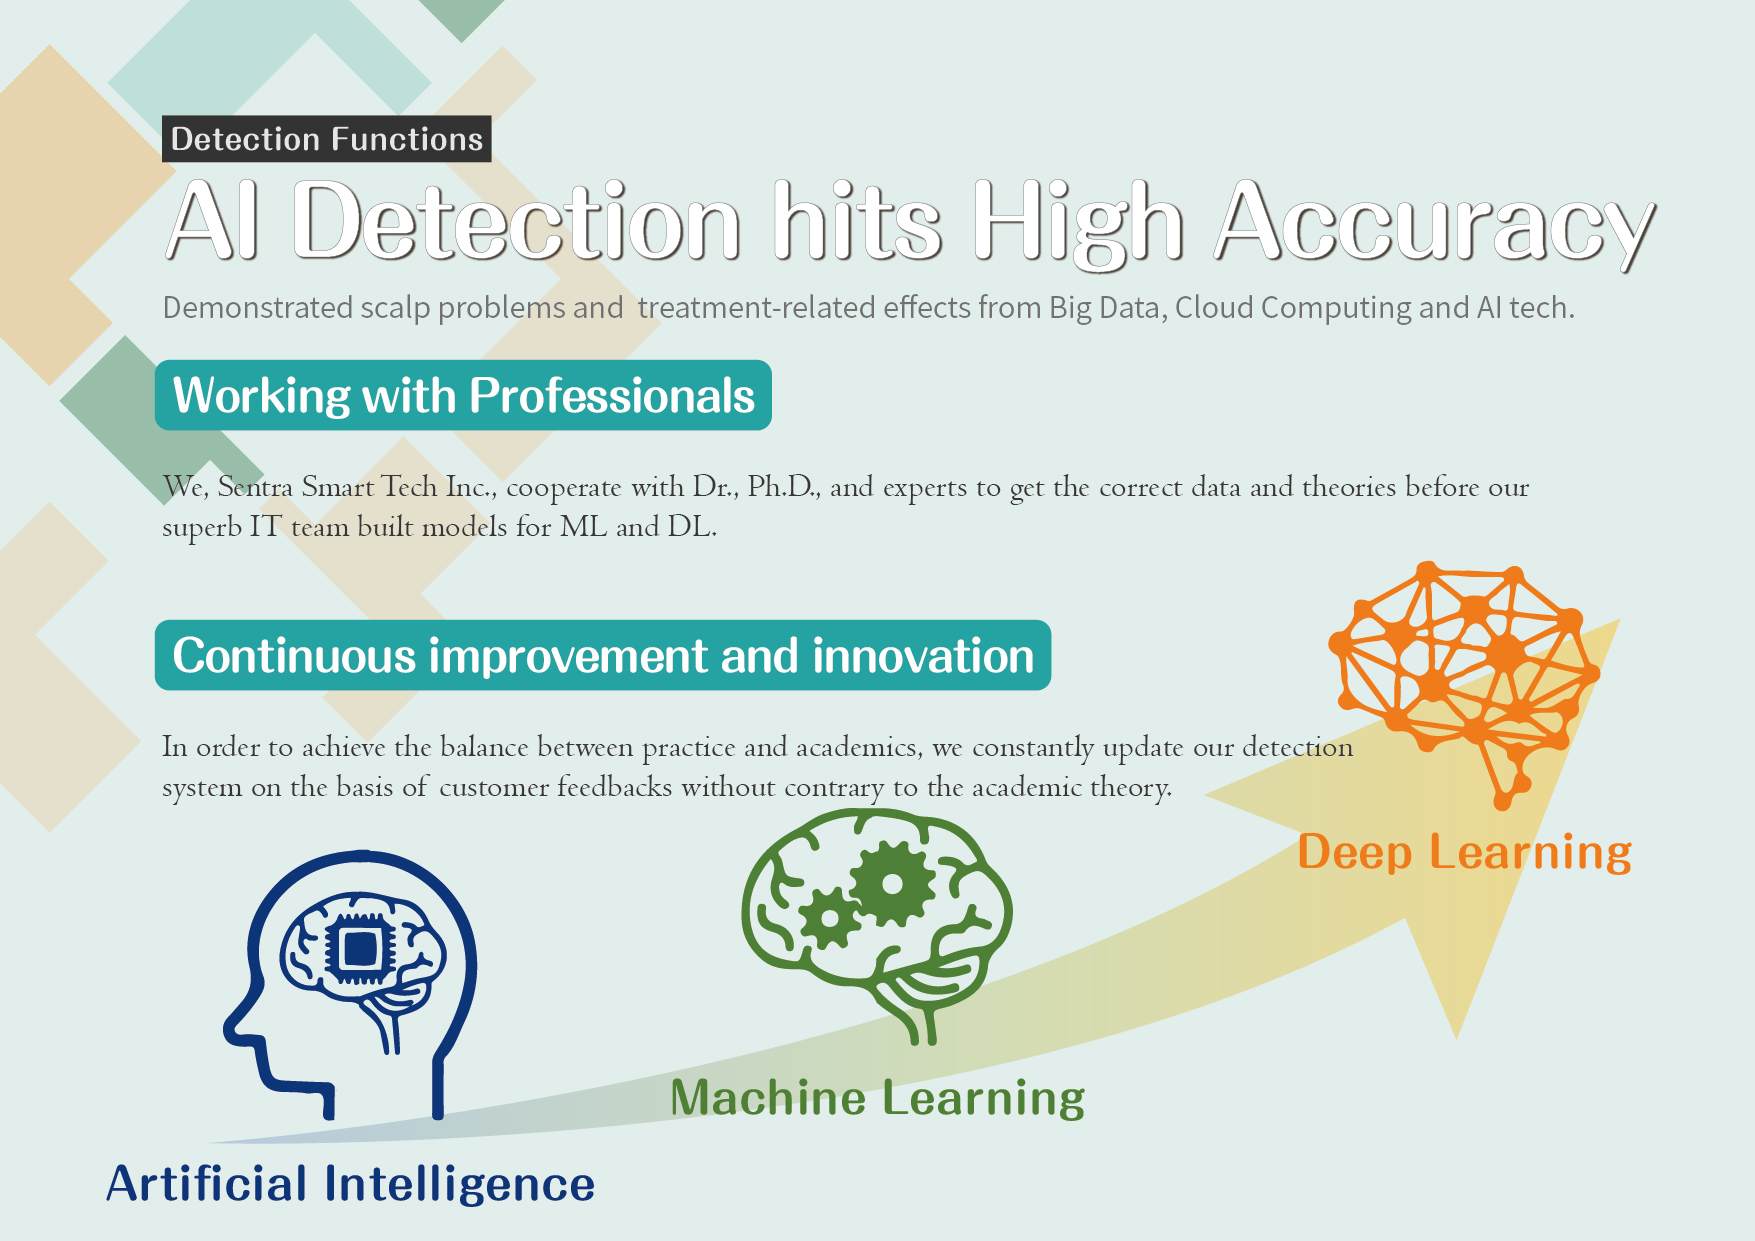 AI Detection hits High Accuracy: Demonstrated scalp problems and  treatment-related effects from Big Data, Cloud Computing and AI tech.